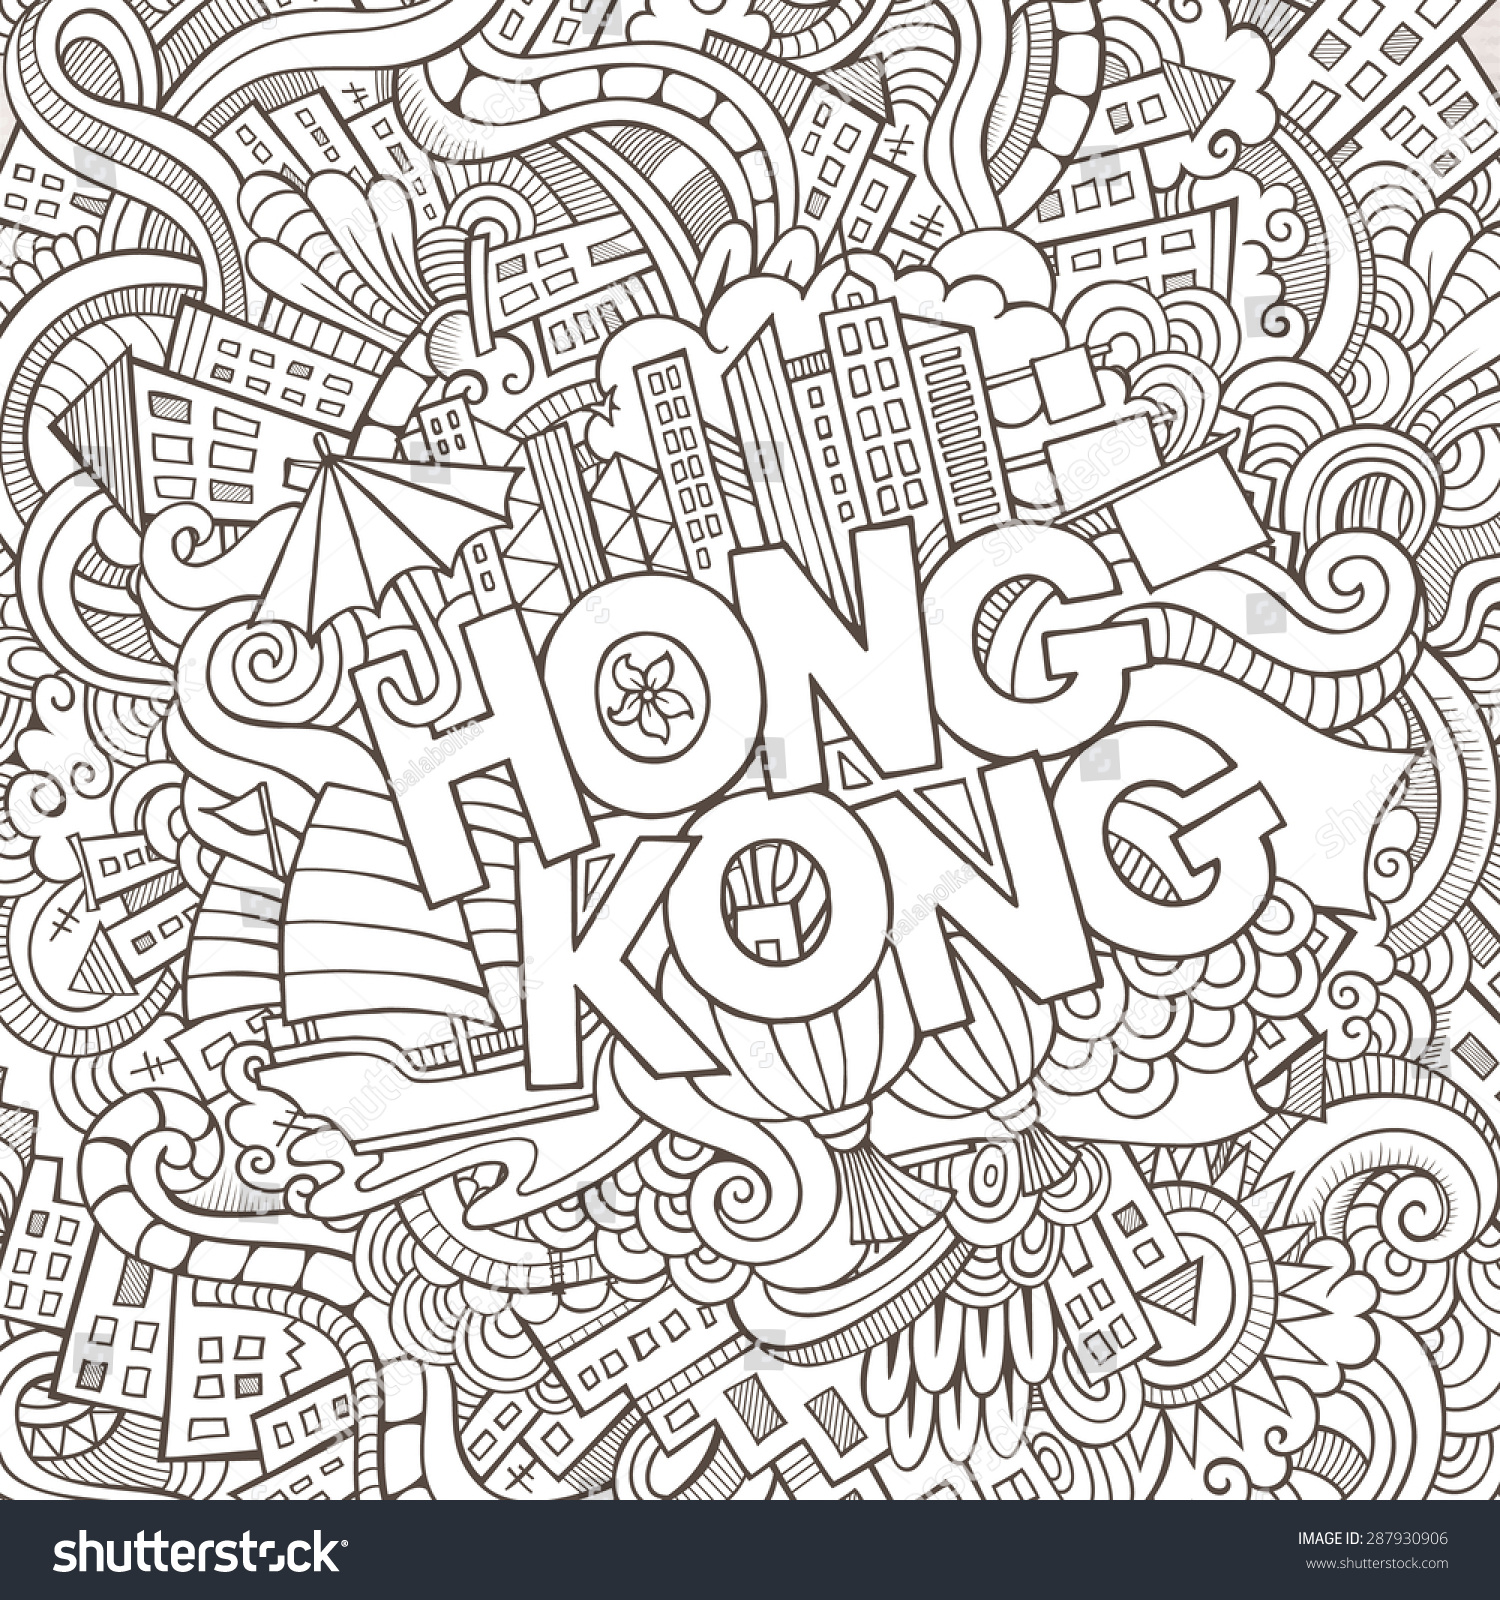 Stock vector music hand lettering and doodles elements - Hong Kong Hand Lettering And Doodles Elements Background Vector Illustration